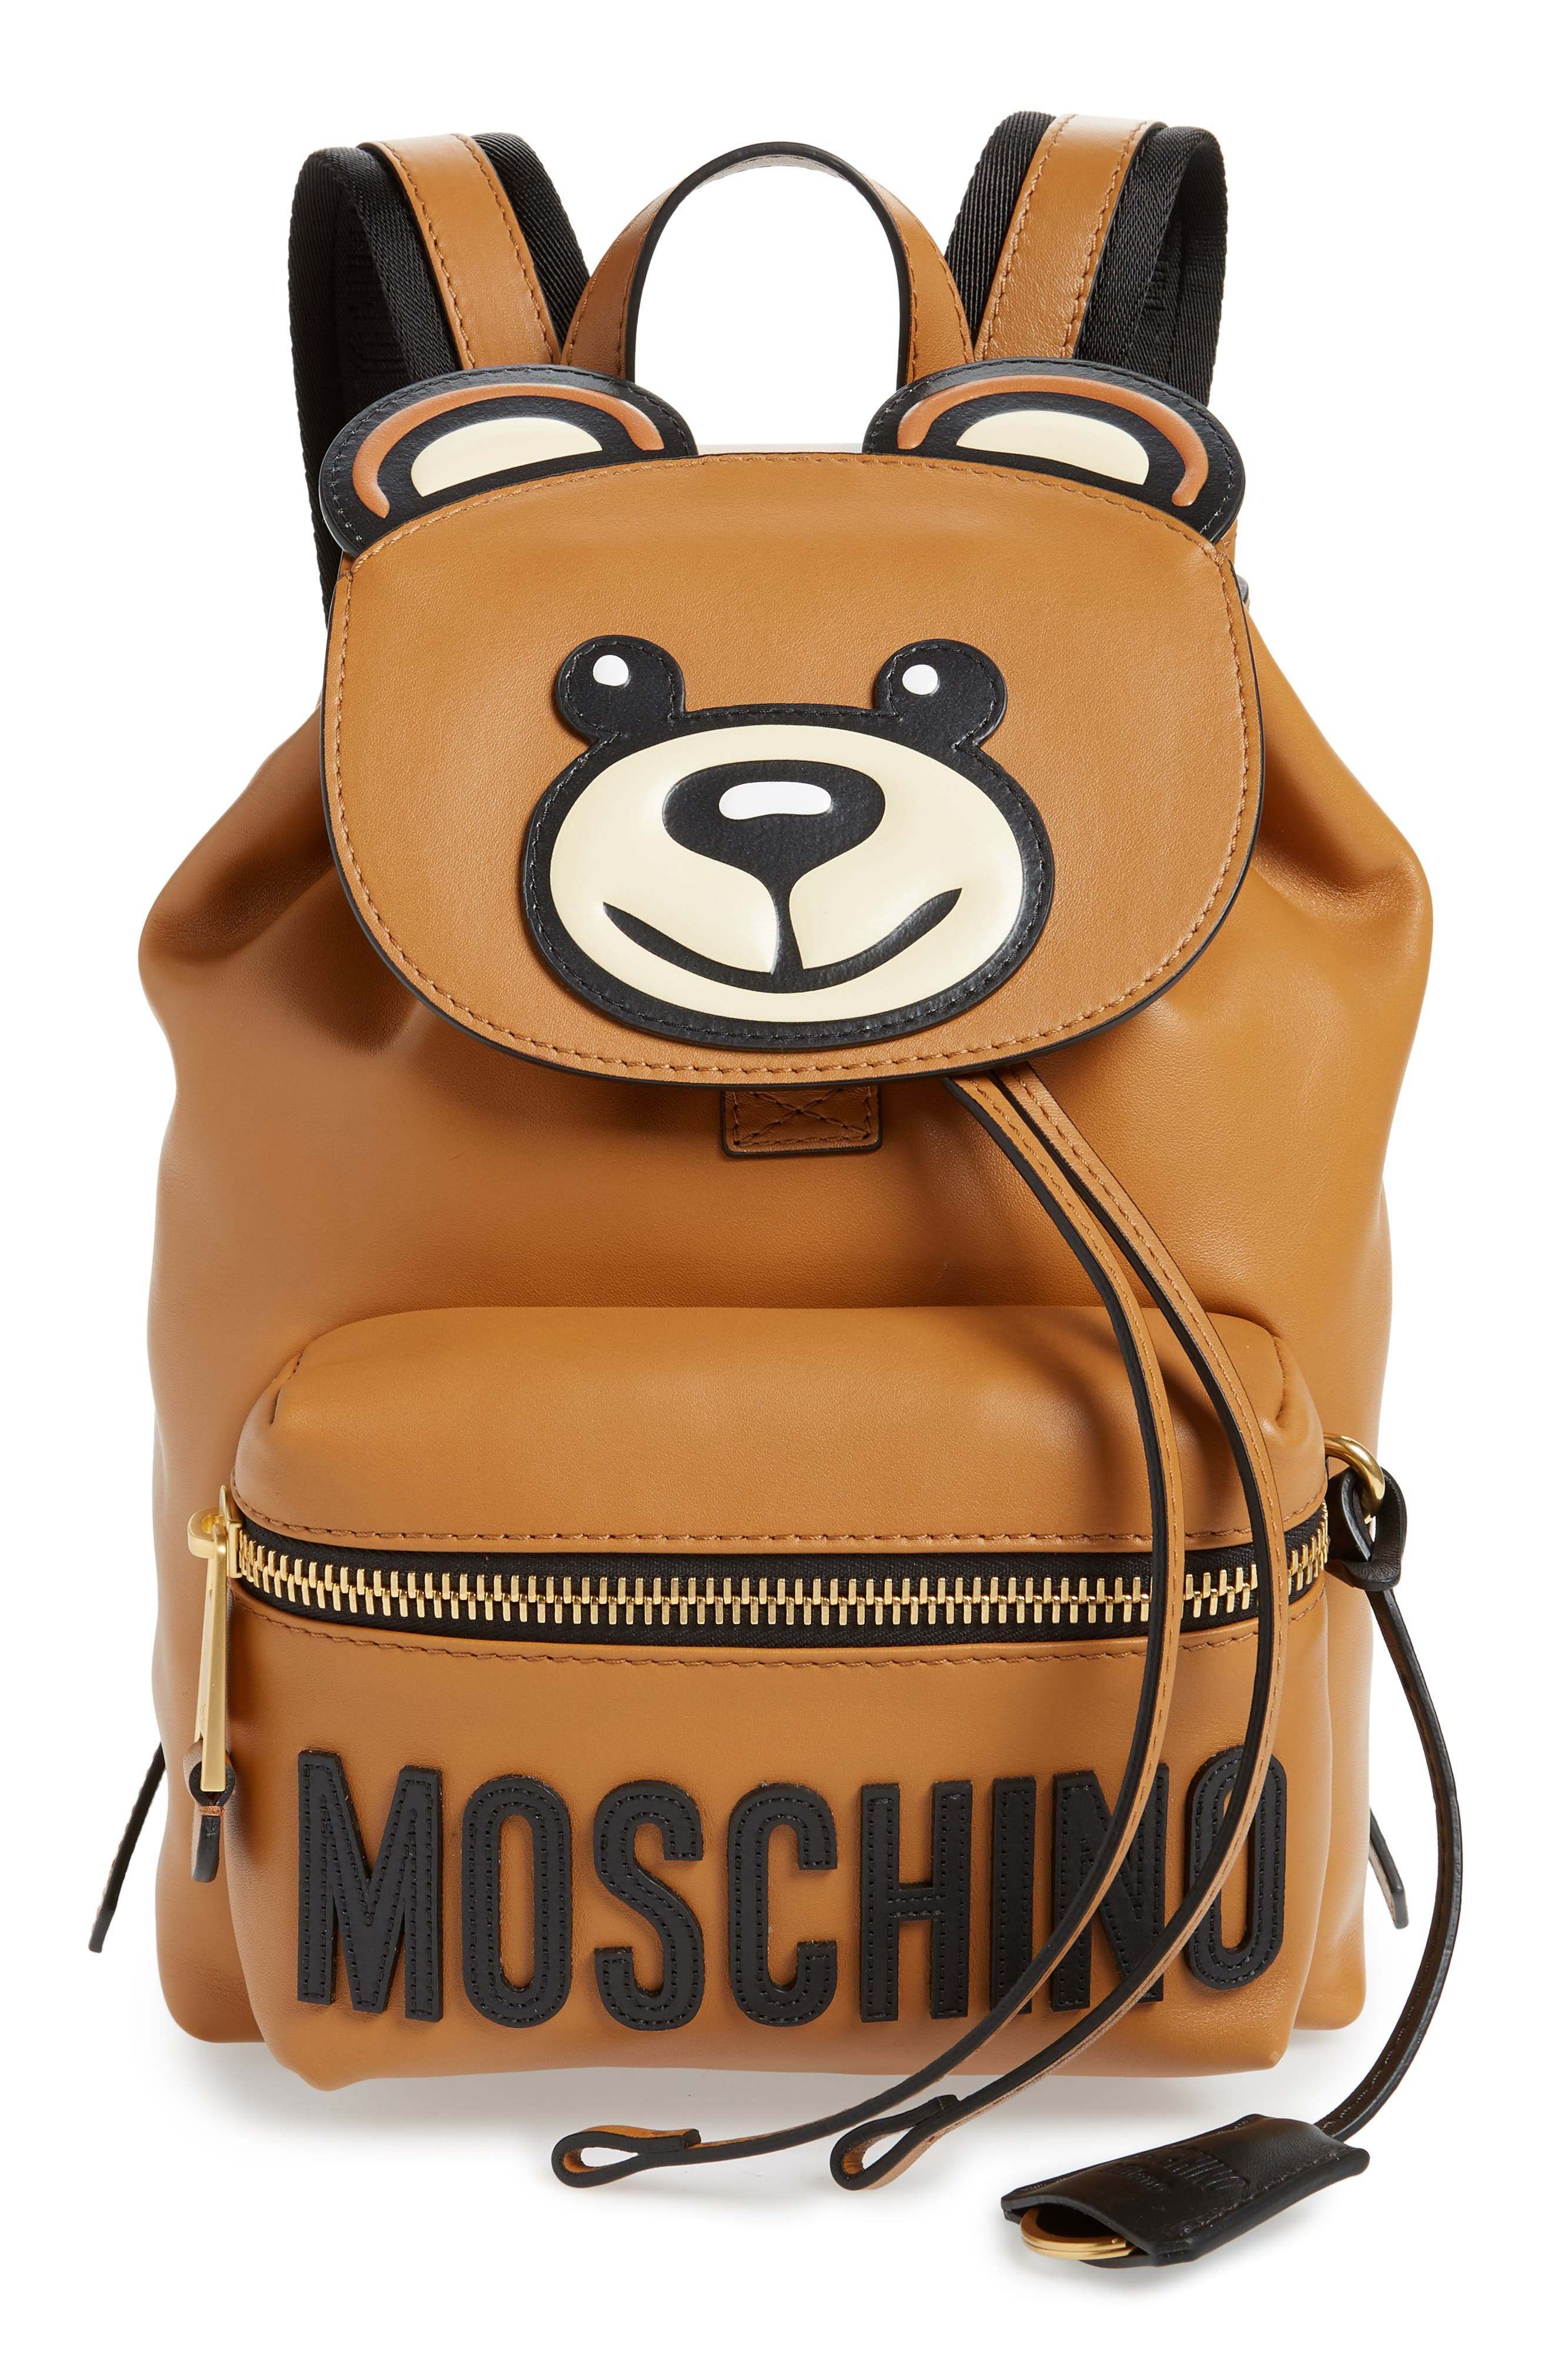 MOSCHINO, Teddy Bear Faux Leather Backpack, Main thumbnail 1, color, BROWN